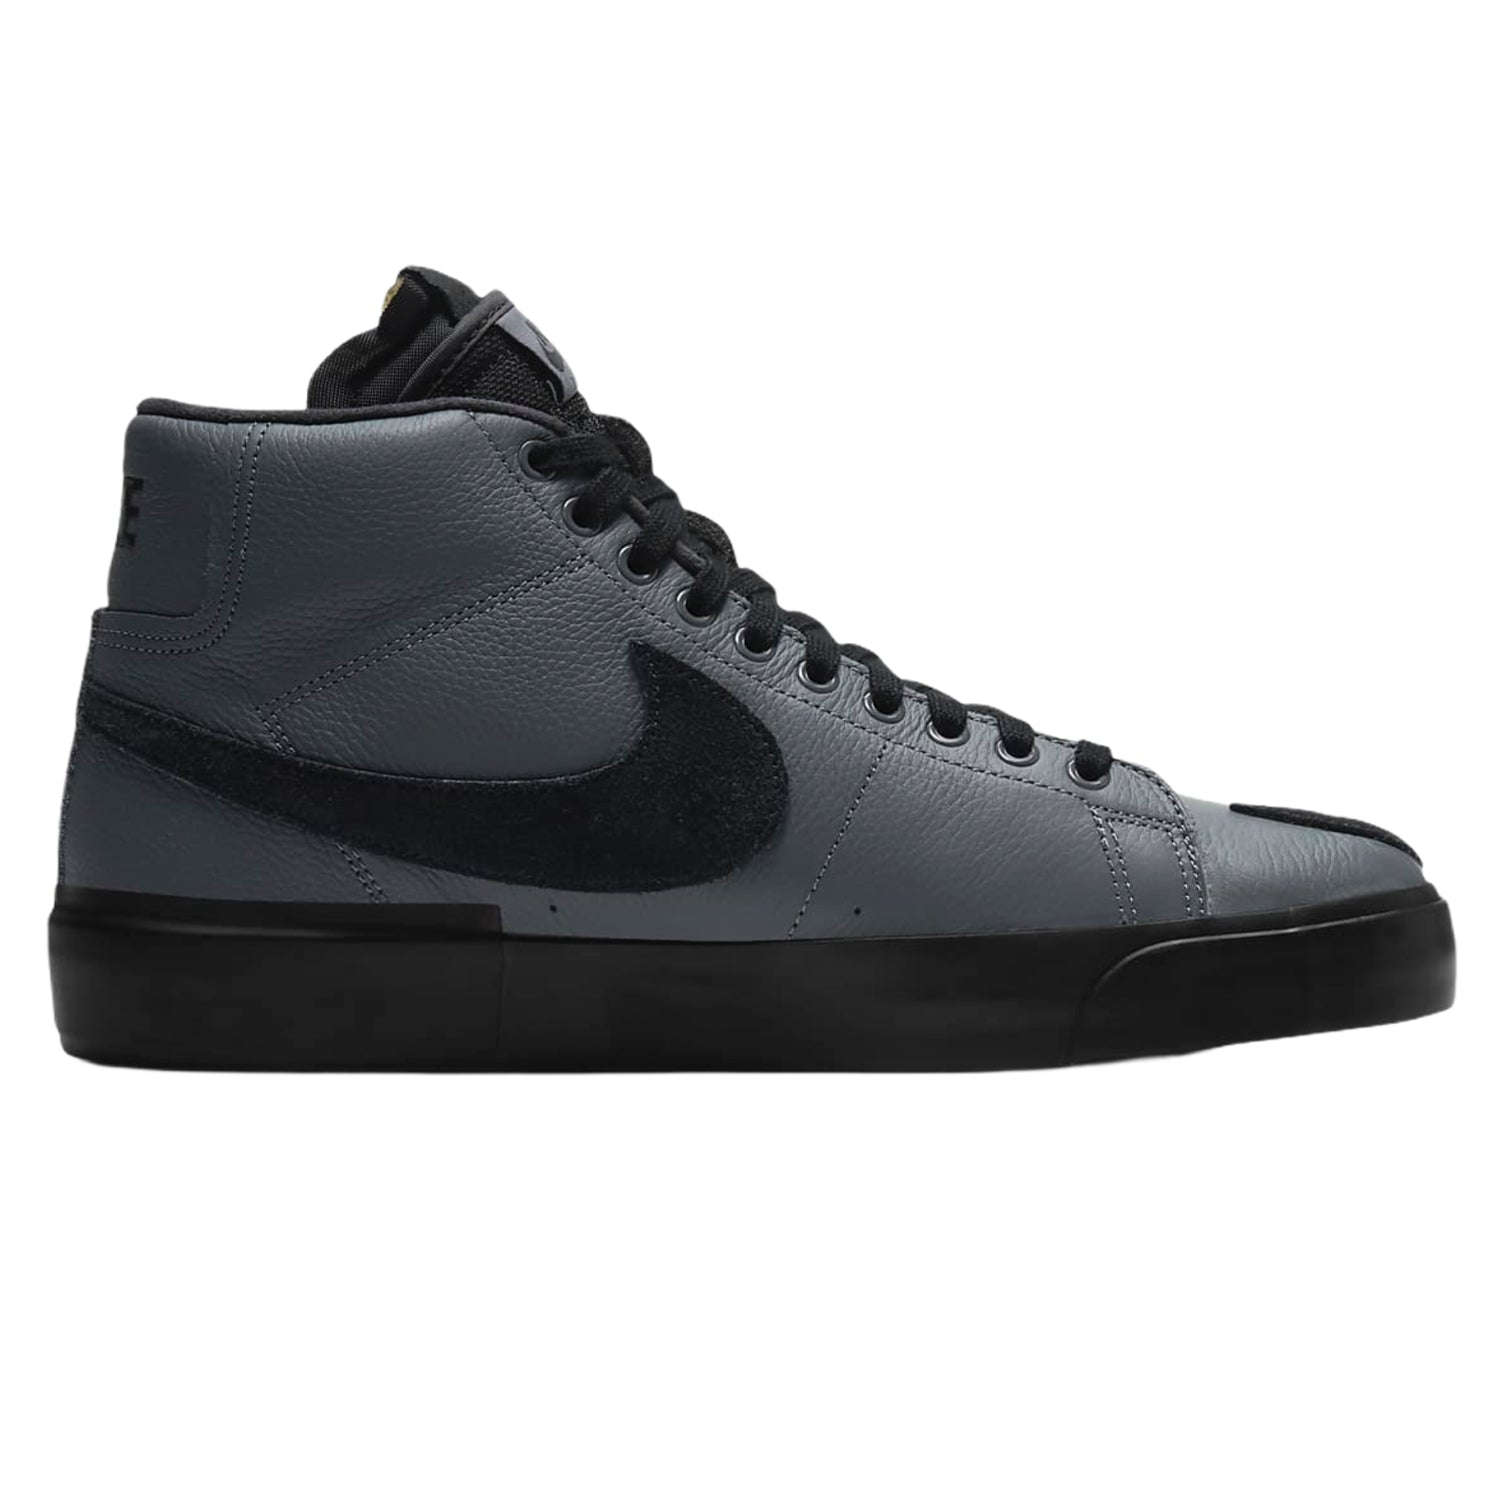 Nike SB Blazer Mid Edge Iron Grey/Black